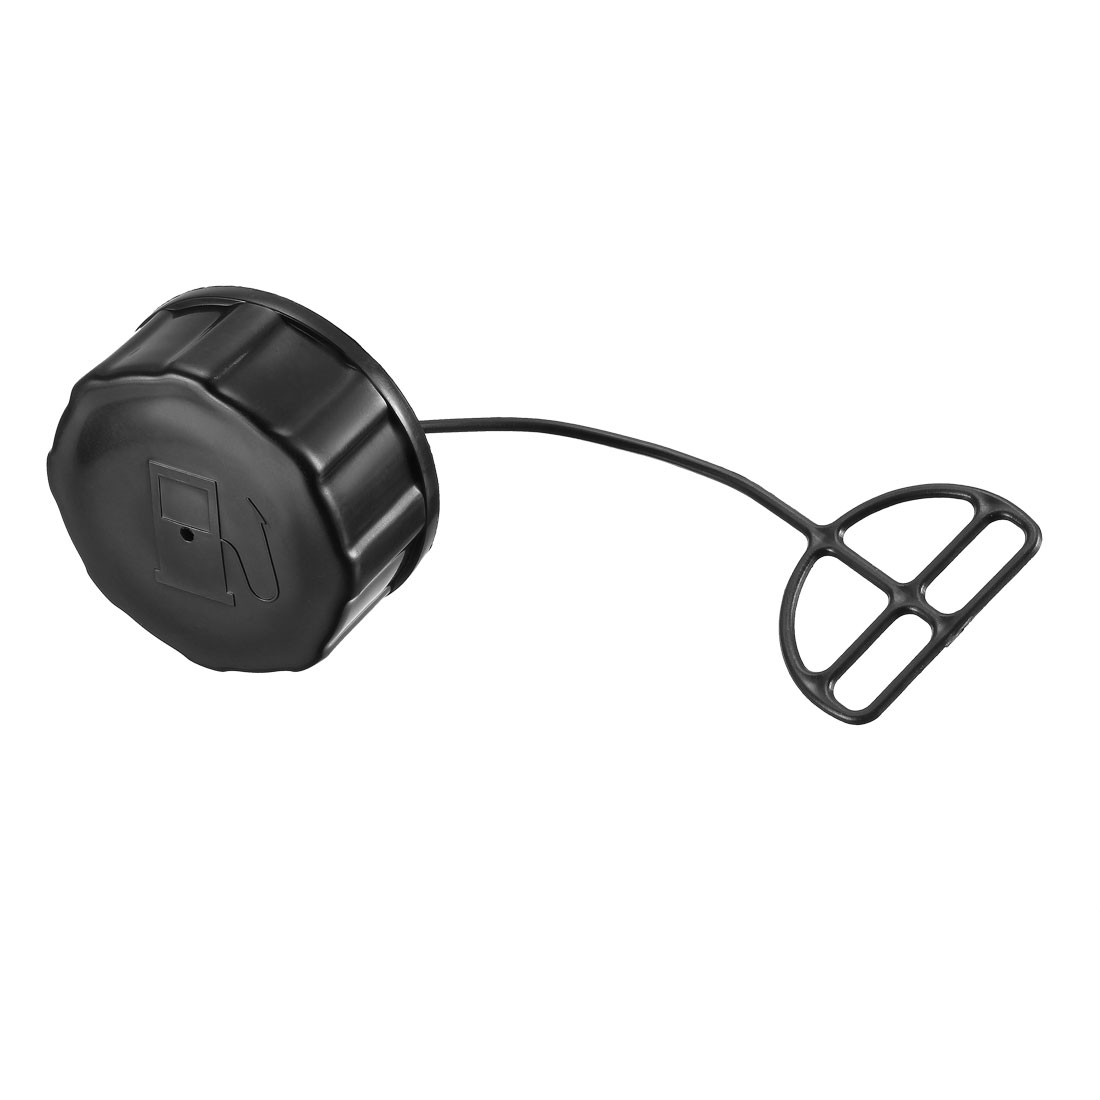 17620-ZM3-063 Fuel Cap Assembly Replacement for Gas Powered Chainsaw